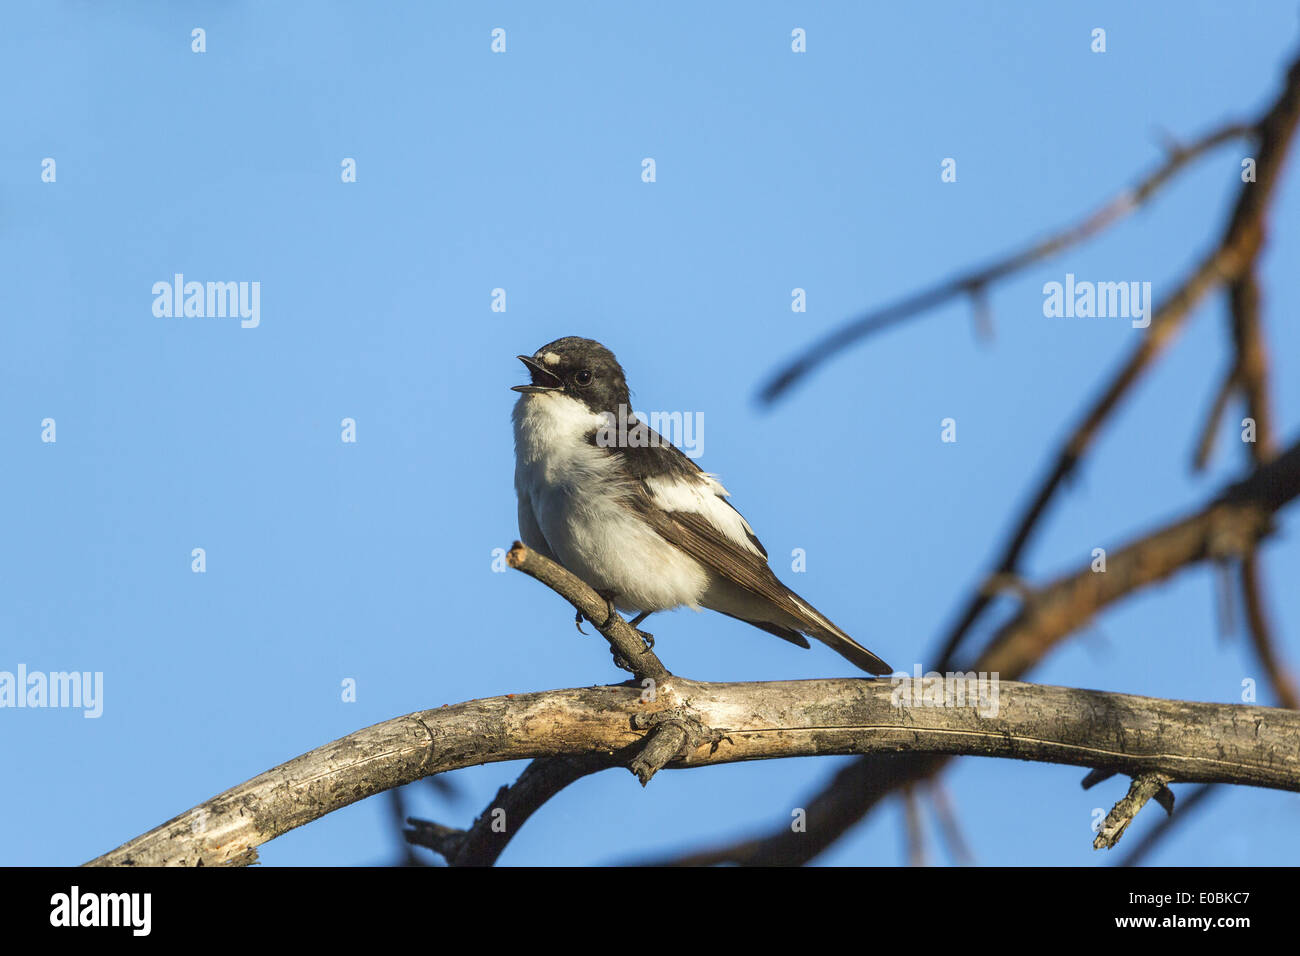 Pied Flycatcher sitting on a branch and singing - Stock Image